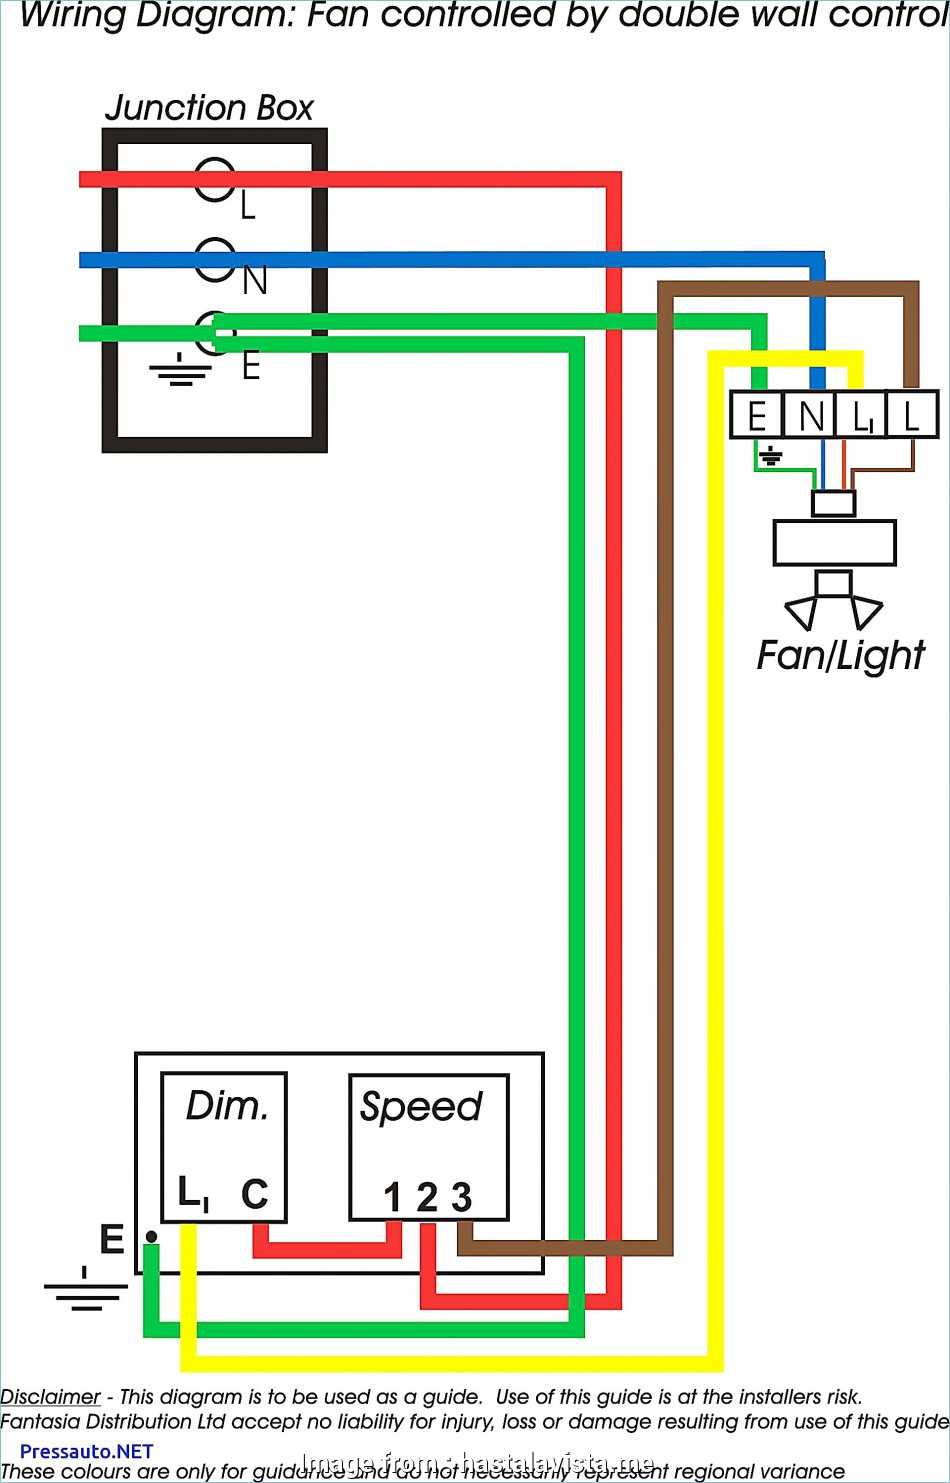 wiring a new double light switch Double Light Switch Wiring Diagram Lovely Nice Pole 15 7 Wiring A, Double Light Switch Brilliant Double Light Switch Wiring Diagram Lovely Nice Pole 15 7 Pictures